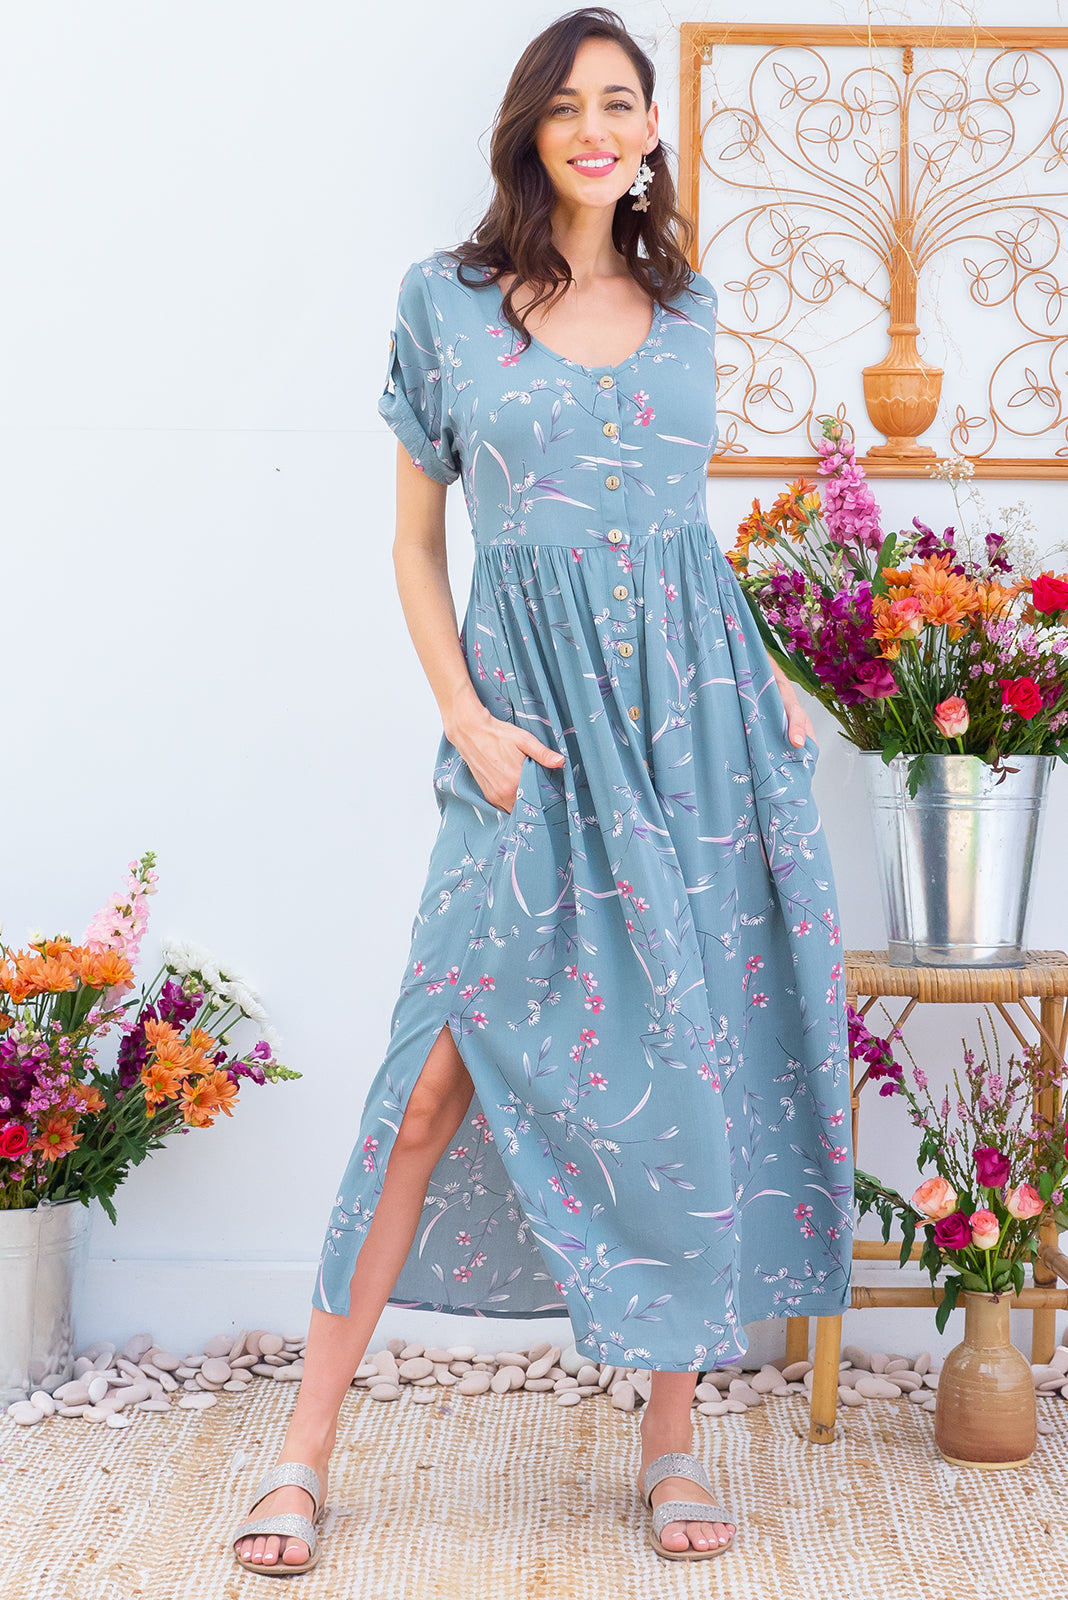 Rocco Rustic Sprig button front maxi dress with roll up tab sleeves, deep side pockets, adjustable tab waist and a soft loose fit comes in a dusty sage green floral print on crinkle textured 100% rayon